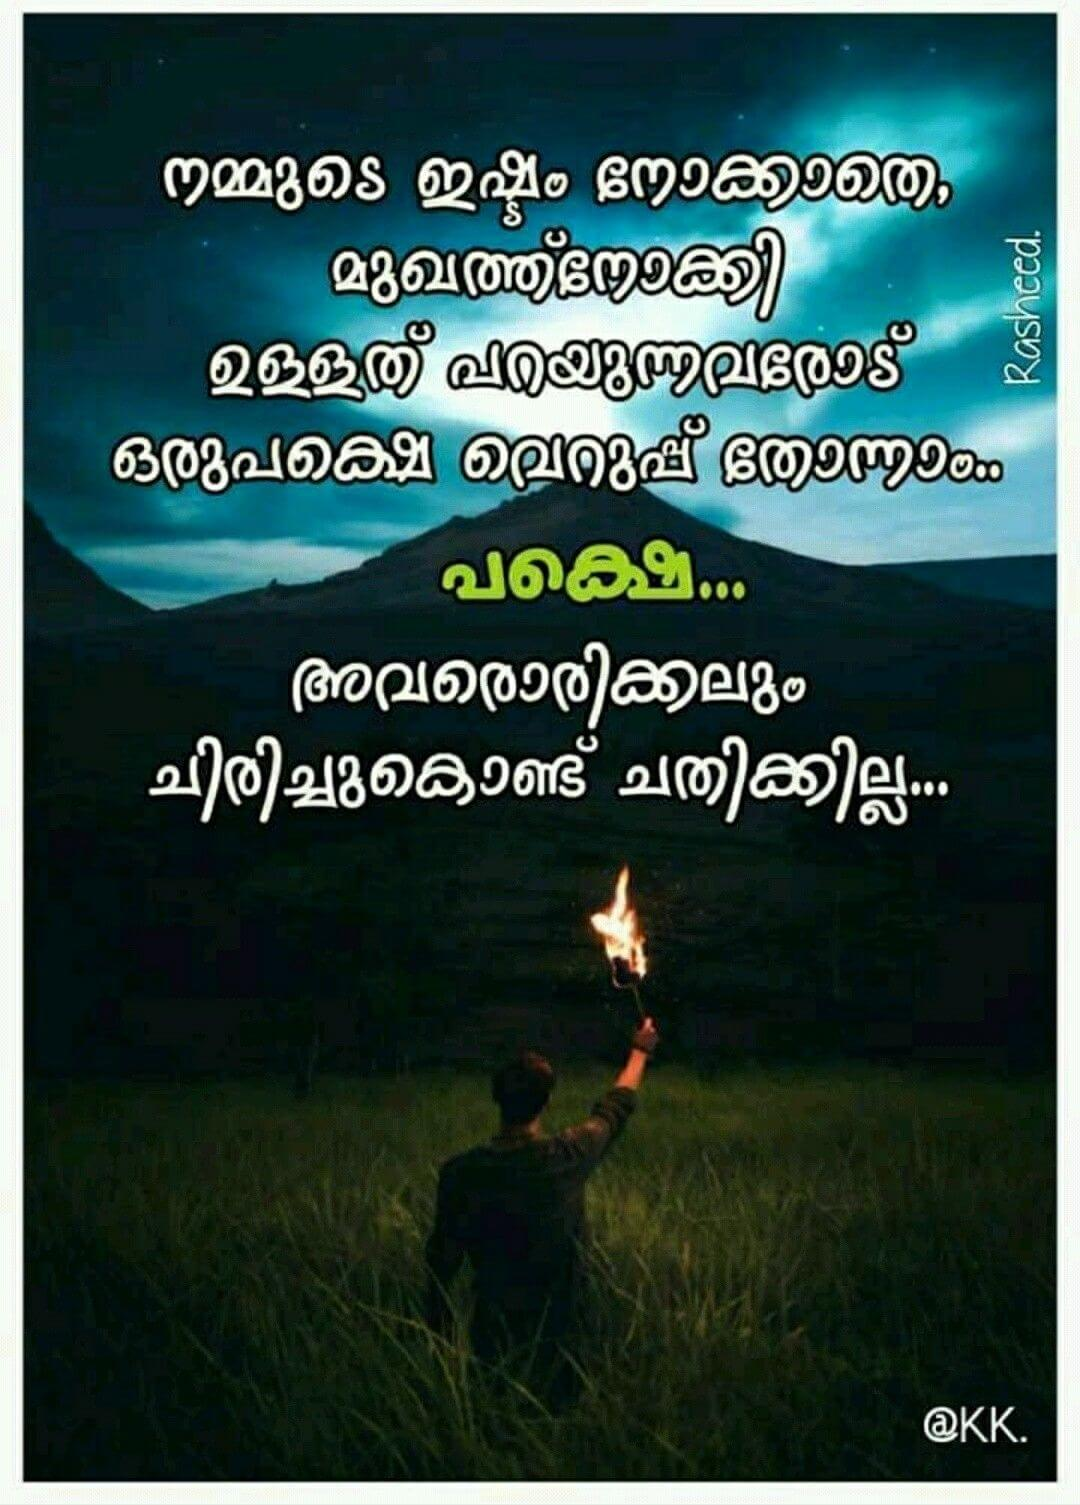 malayalam romantic messages for lover